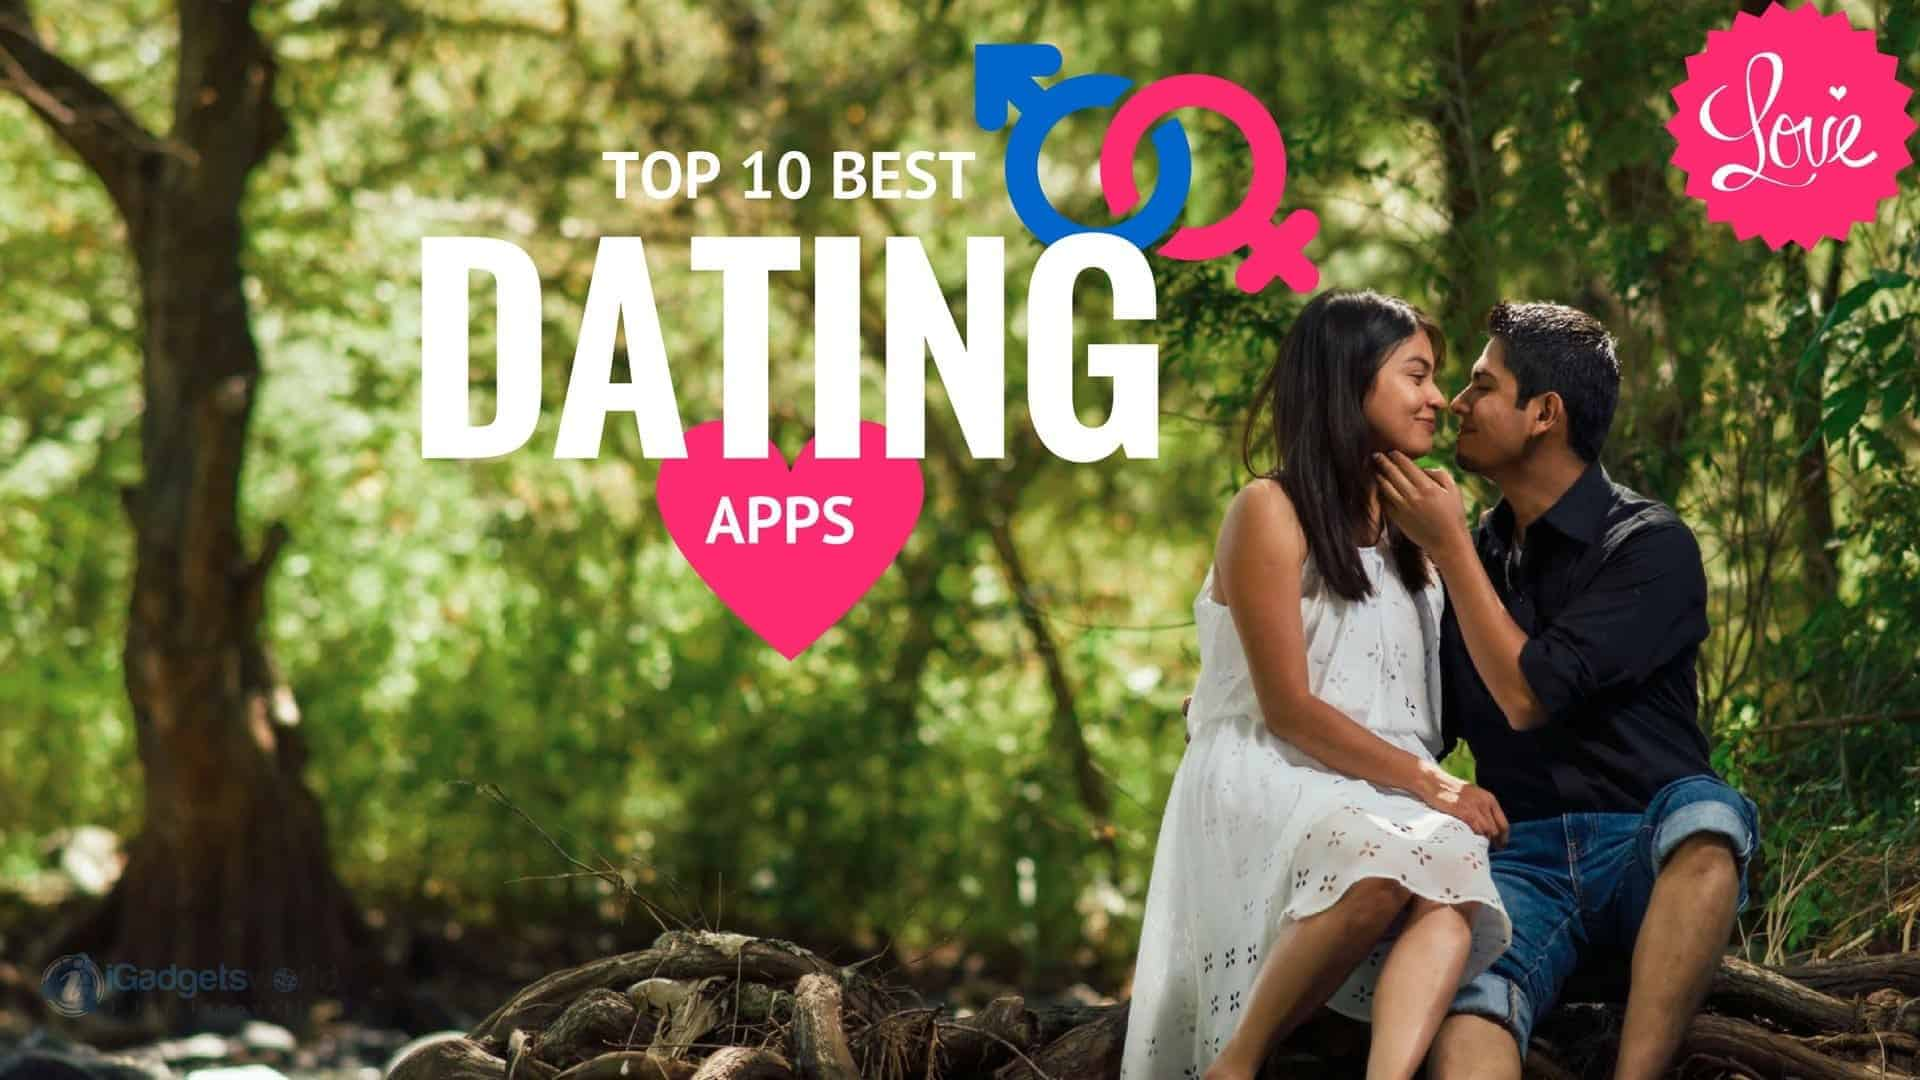 How popular are dating apps